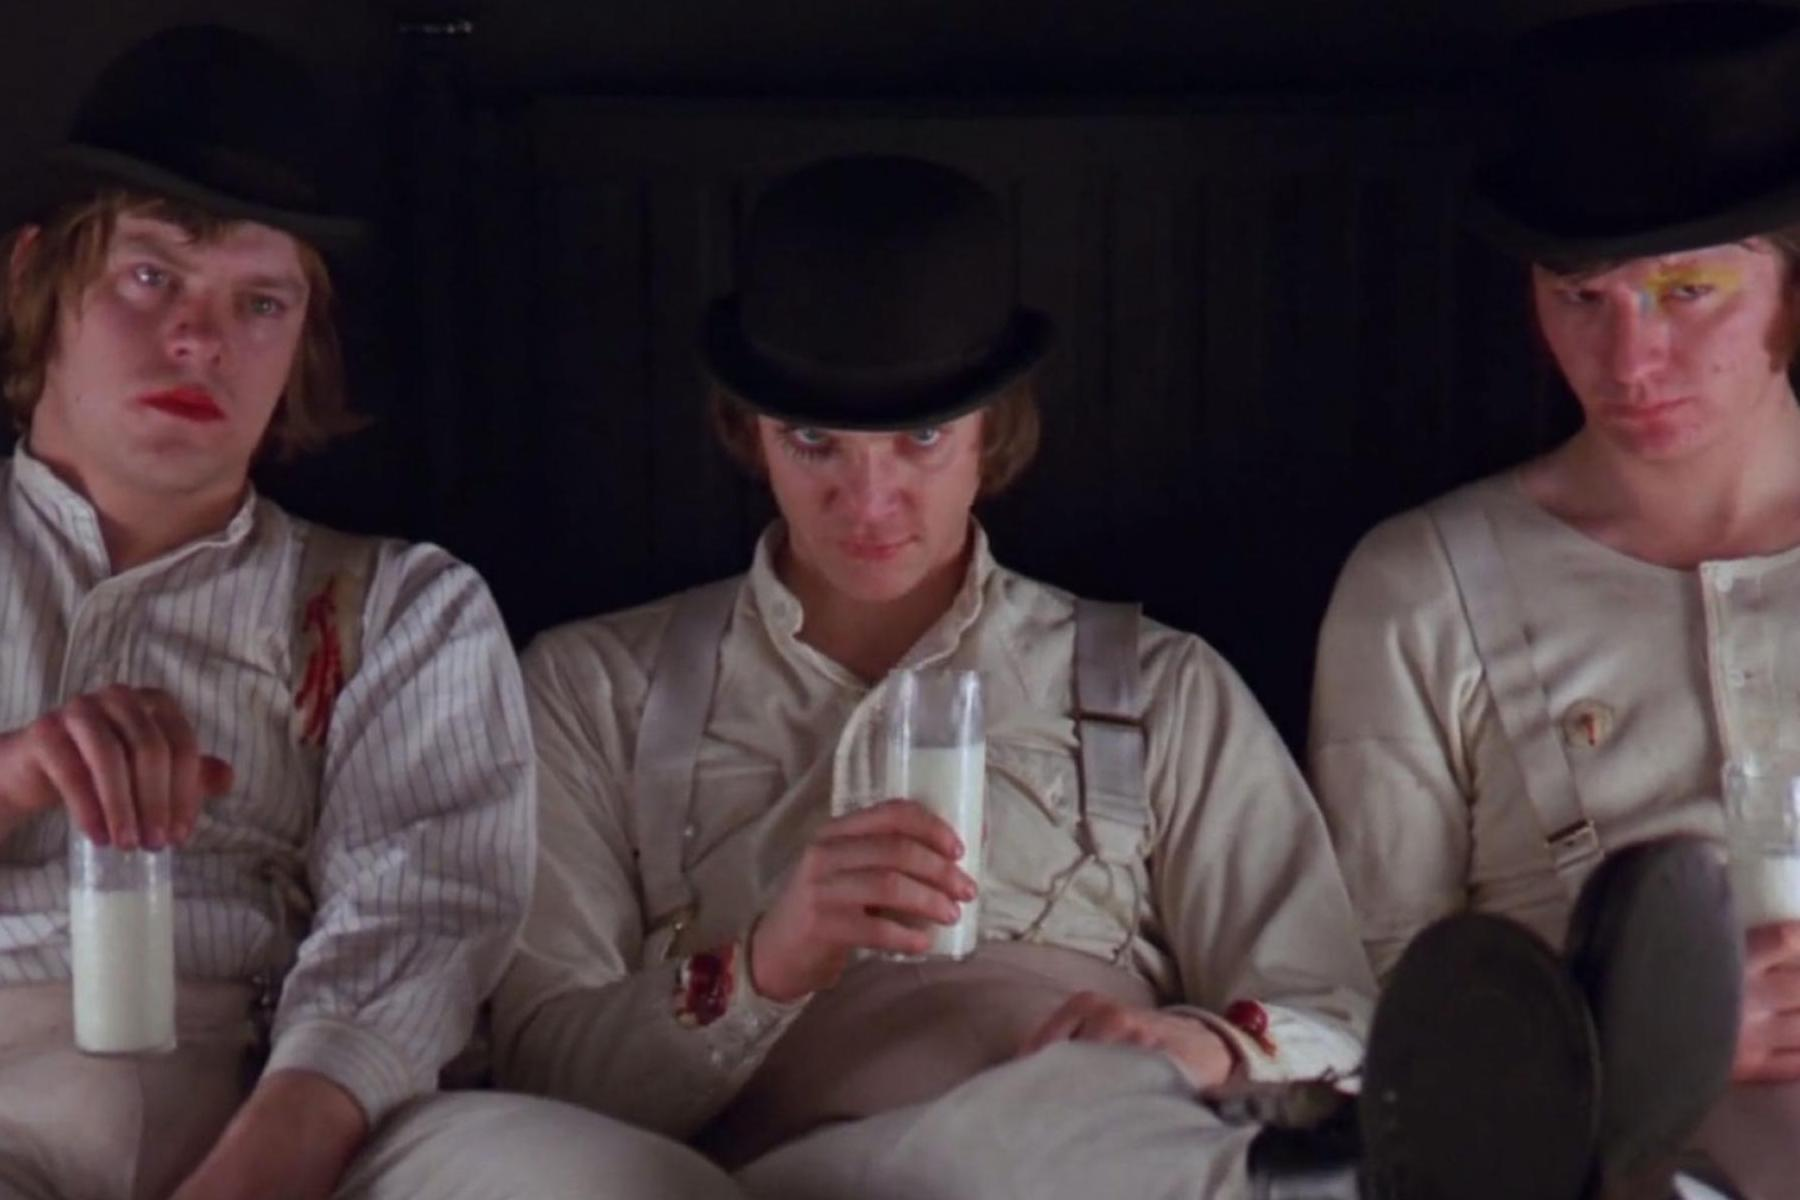 A photo from A Clockwork Orange for an article about the film's 50th anniversary. (Image via Google Images)